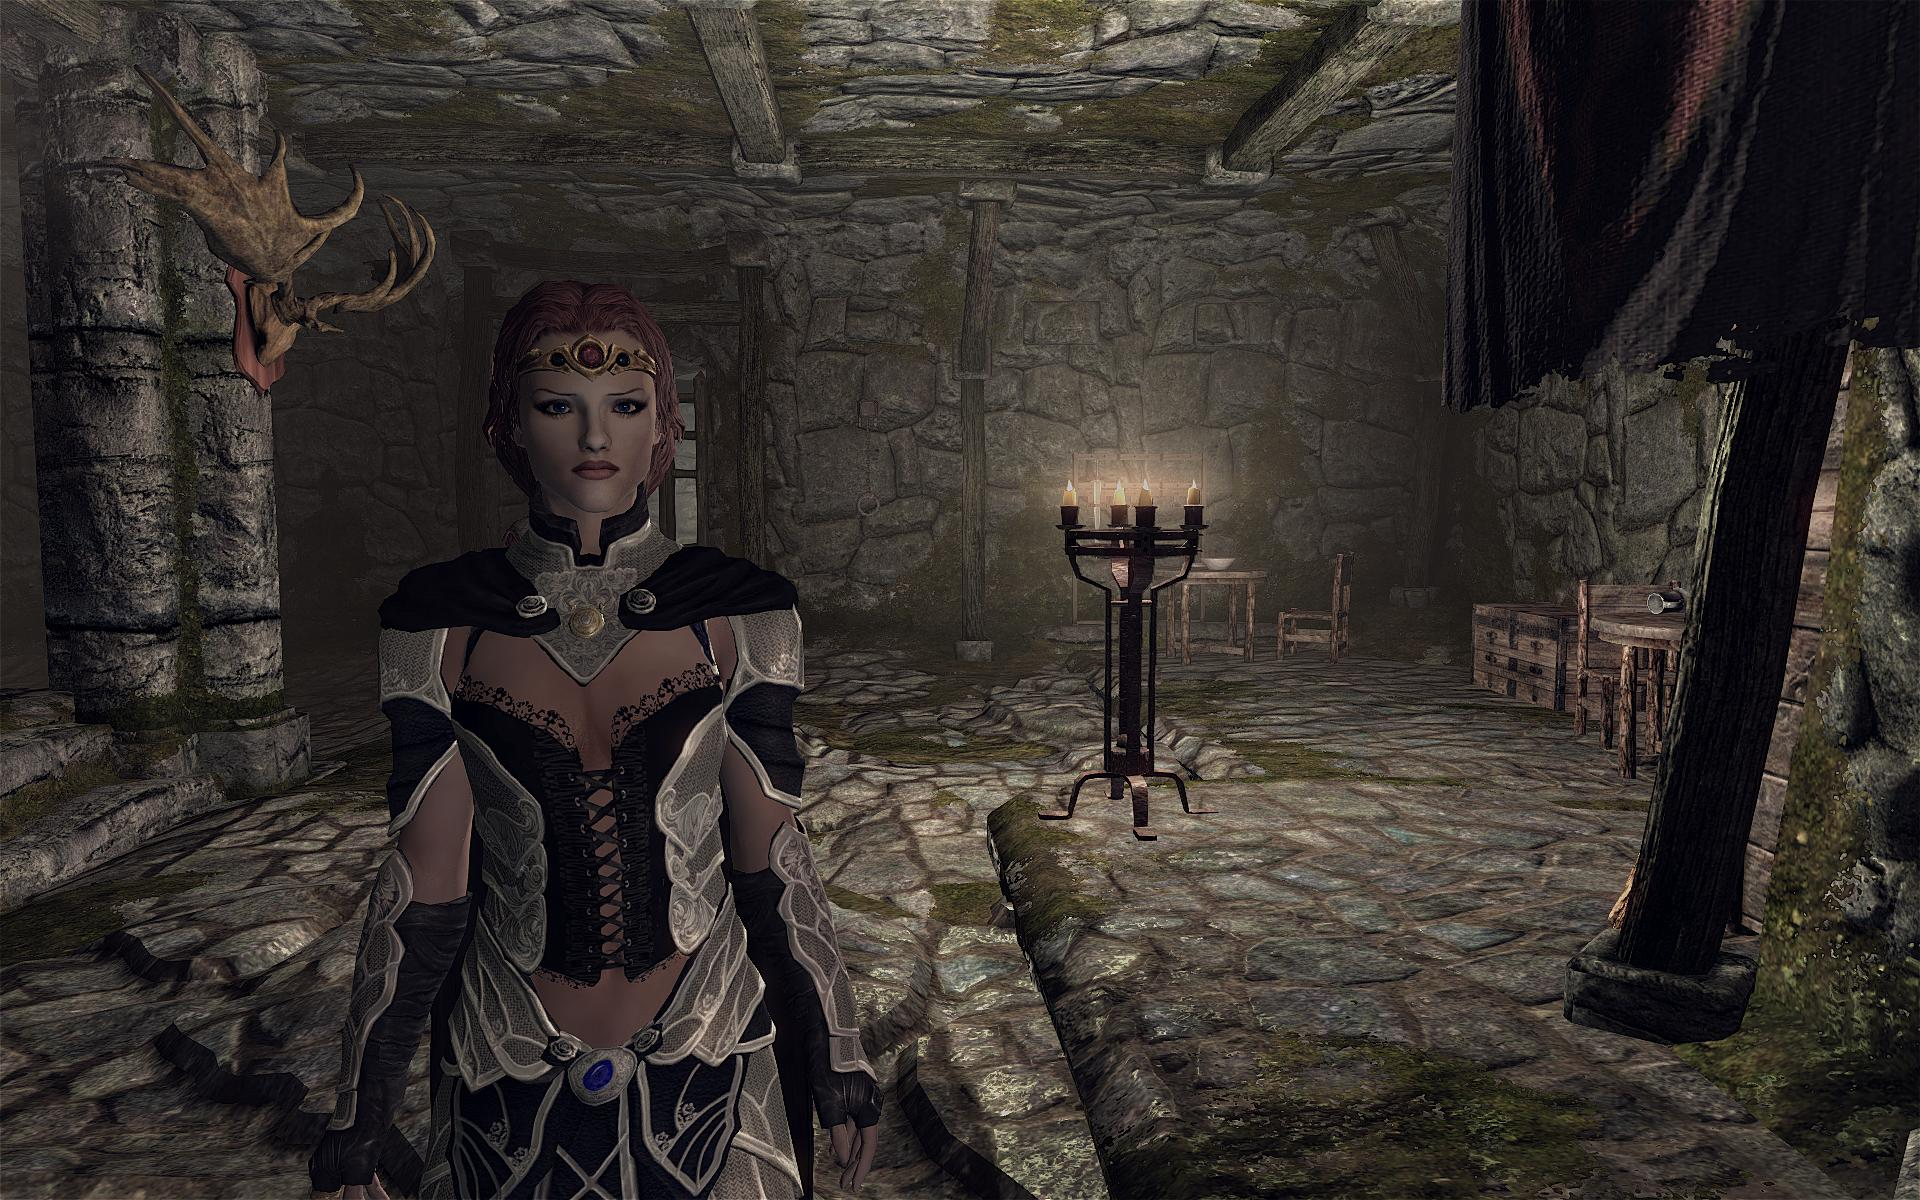 Sonjia Lvl 1 Red Haired Beauty At Skyrim Nexus Mods And Community